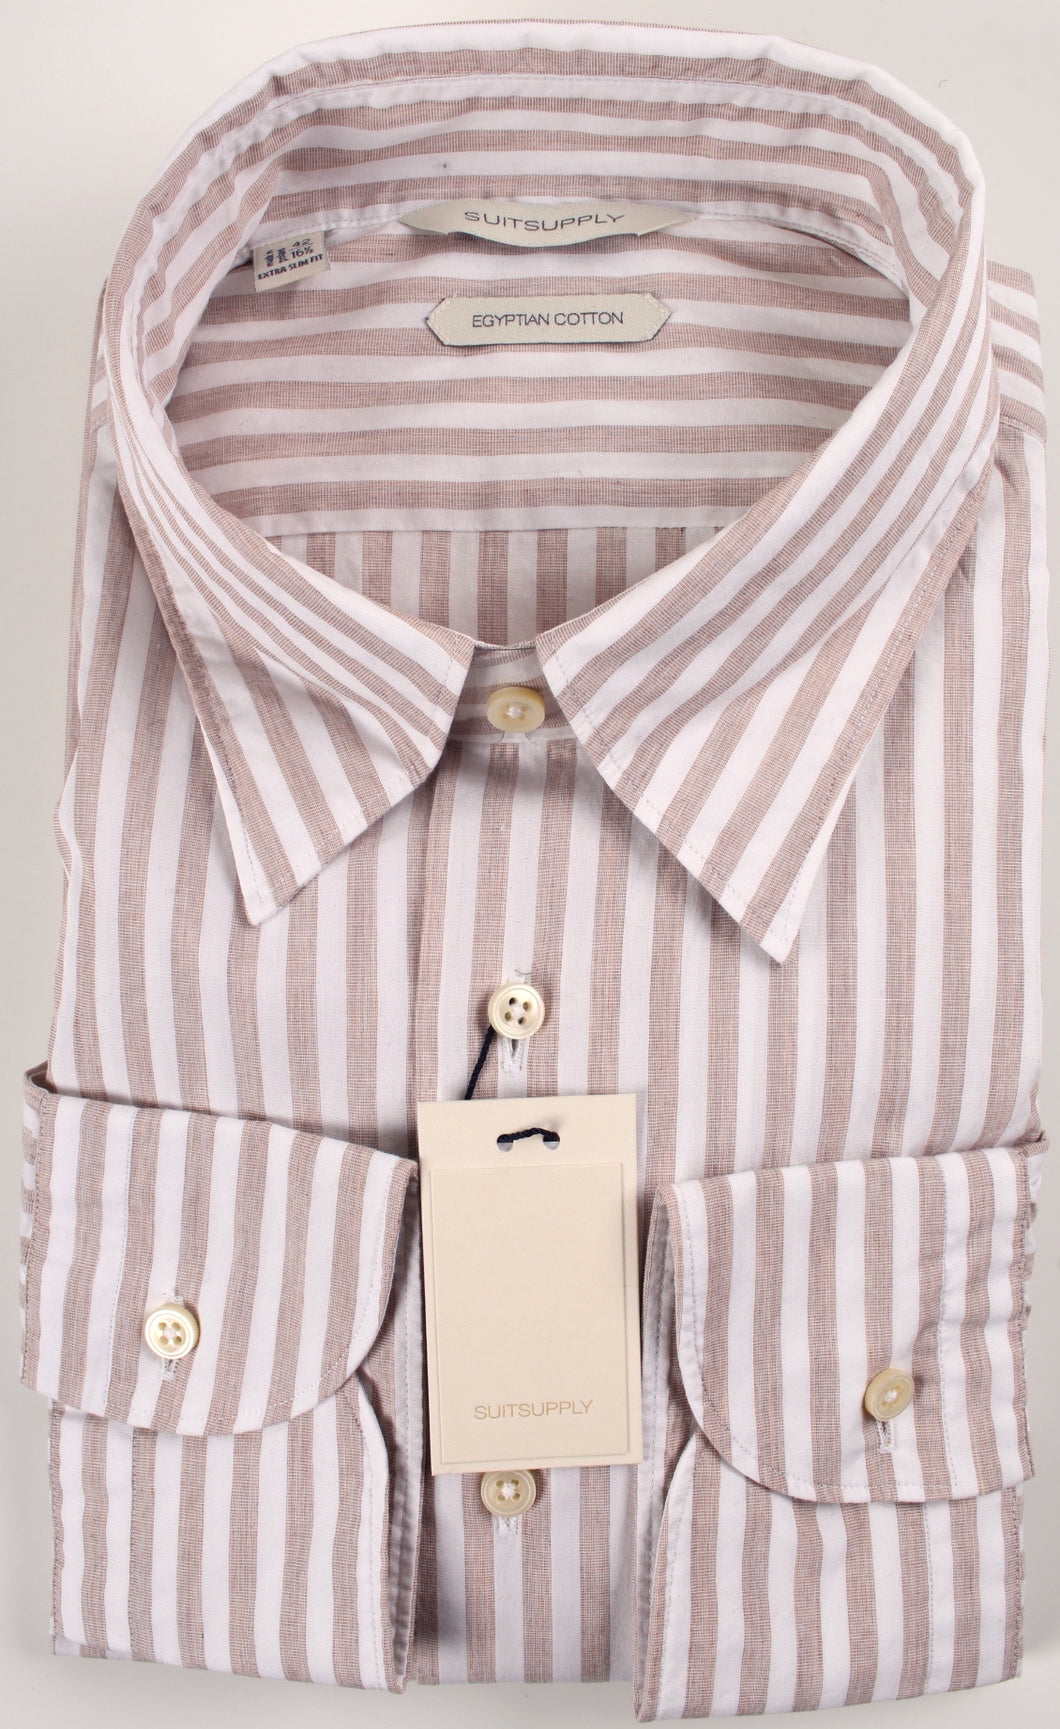 New Suitsupply Brown Stripe Button Down Collar Egyptian Cotton Extra Slim Fit Shirt - Size 16.5